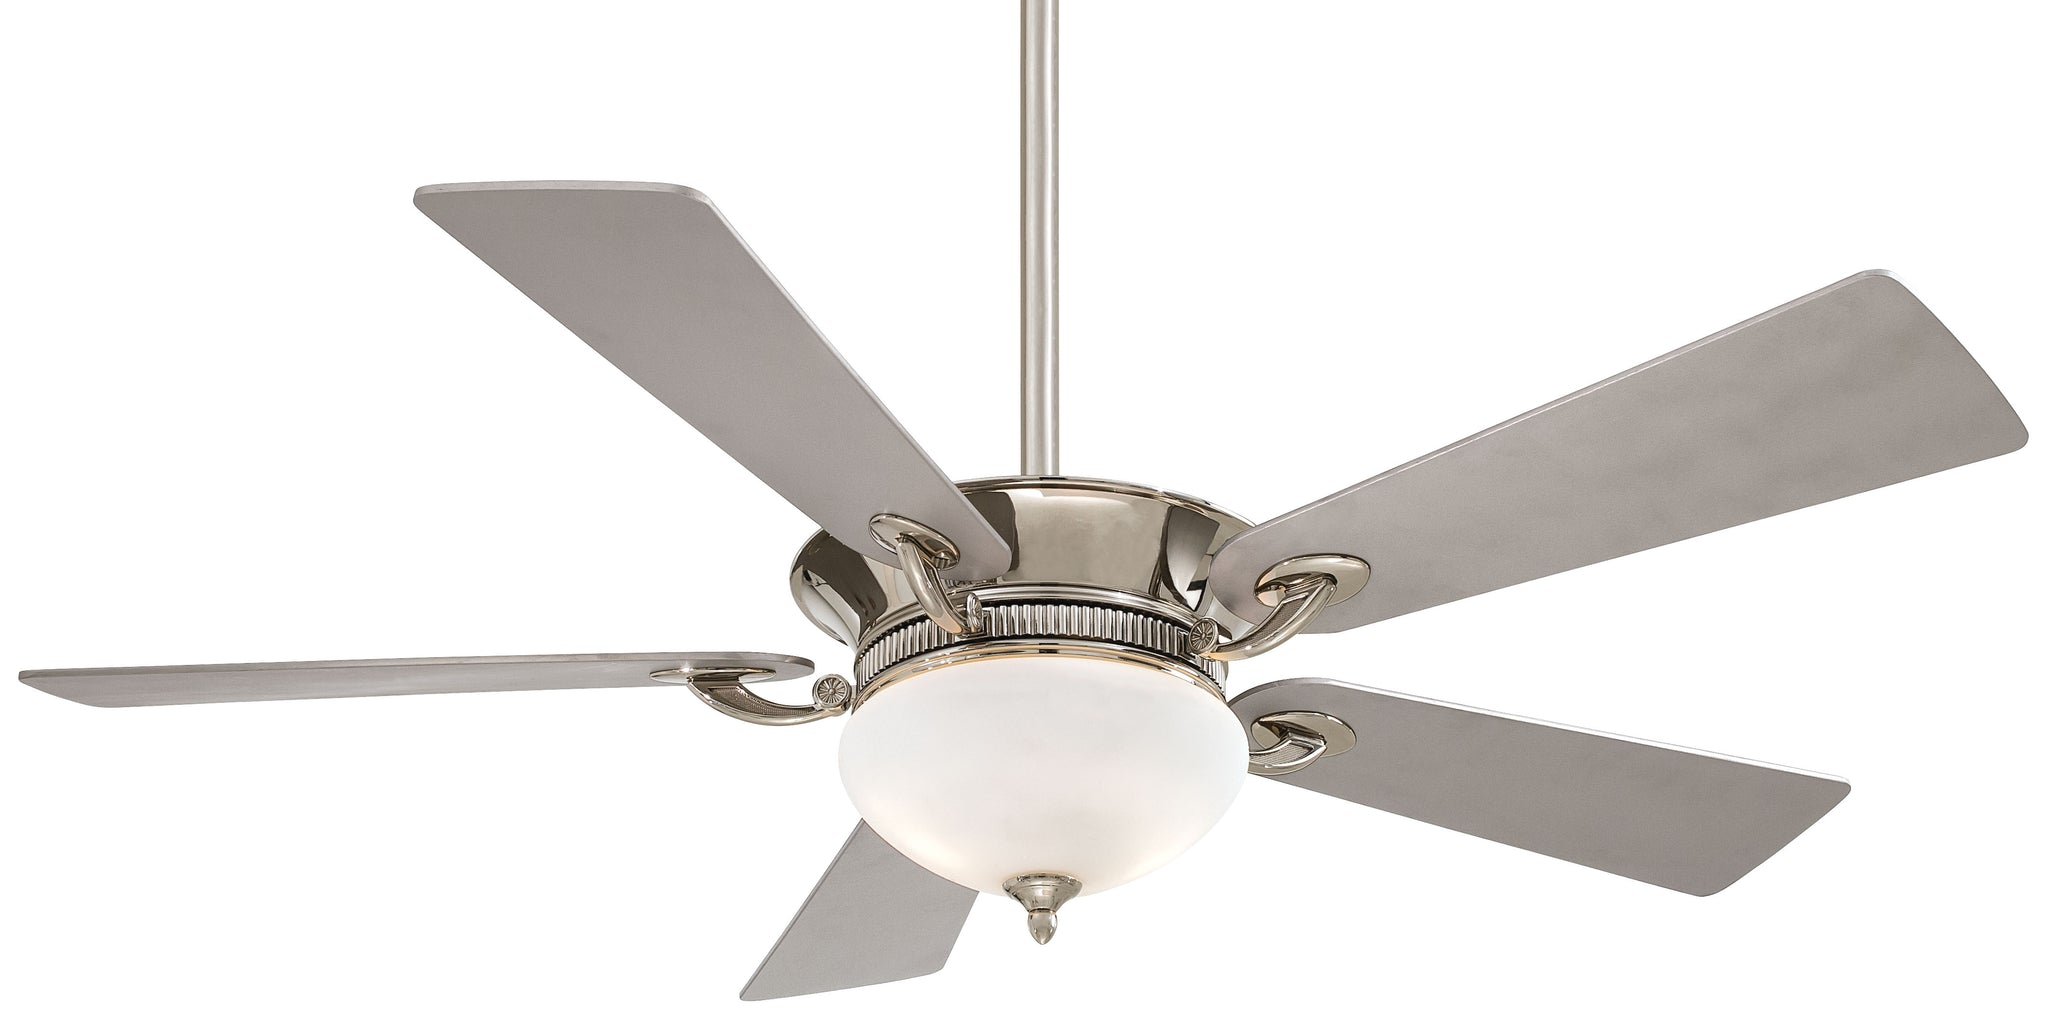 "Delano 52"" Interior Fan with Halogen Light, F701"